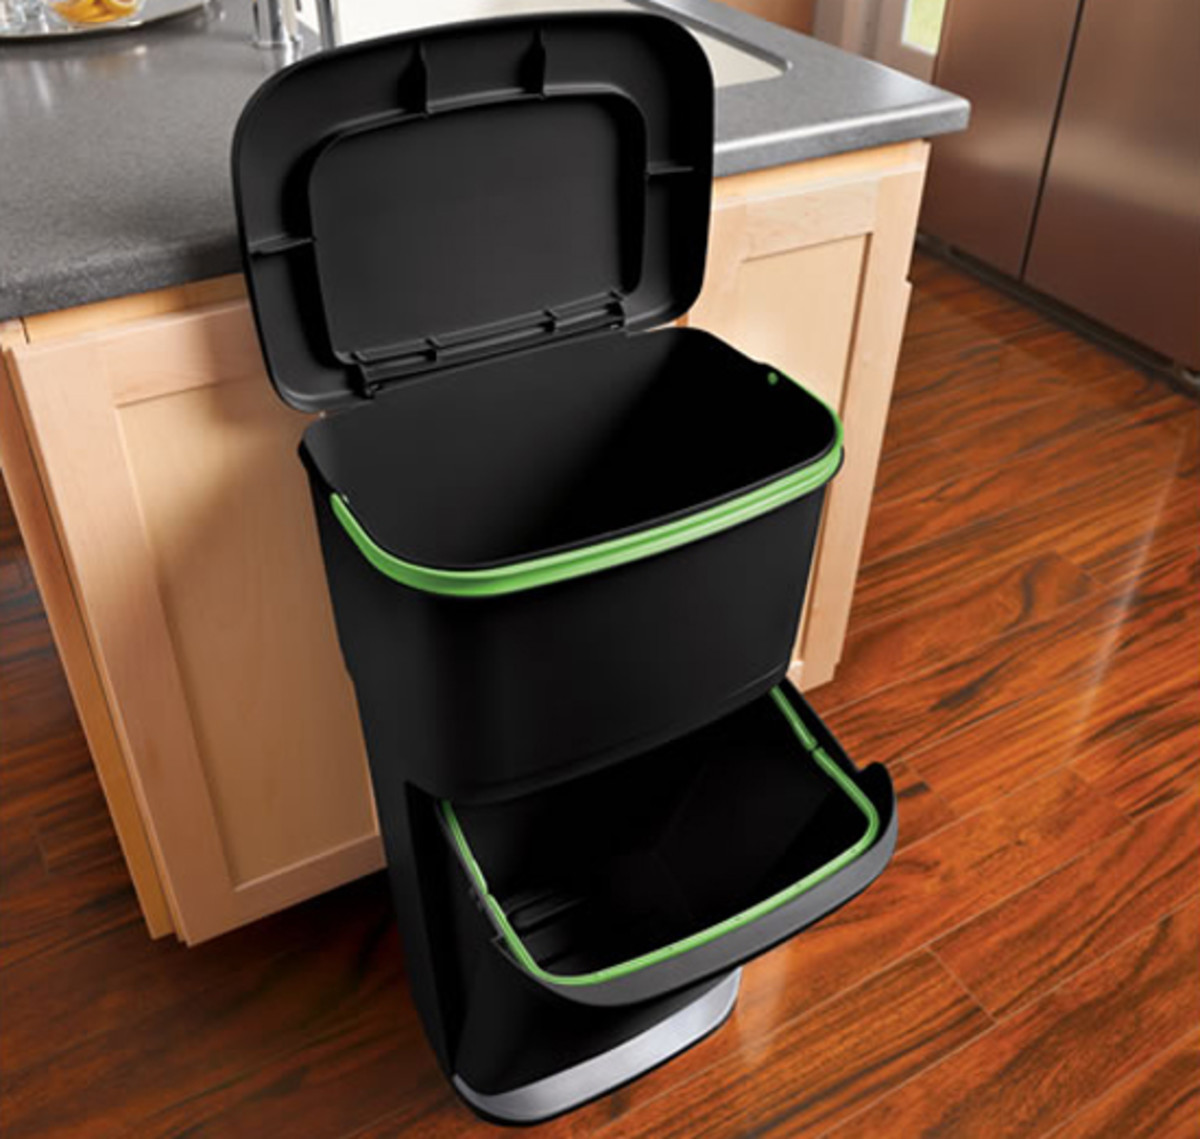 Rubbermaid 2 in 1 Recycler